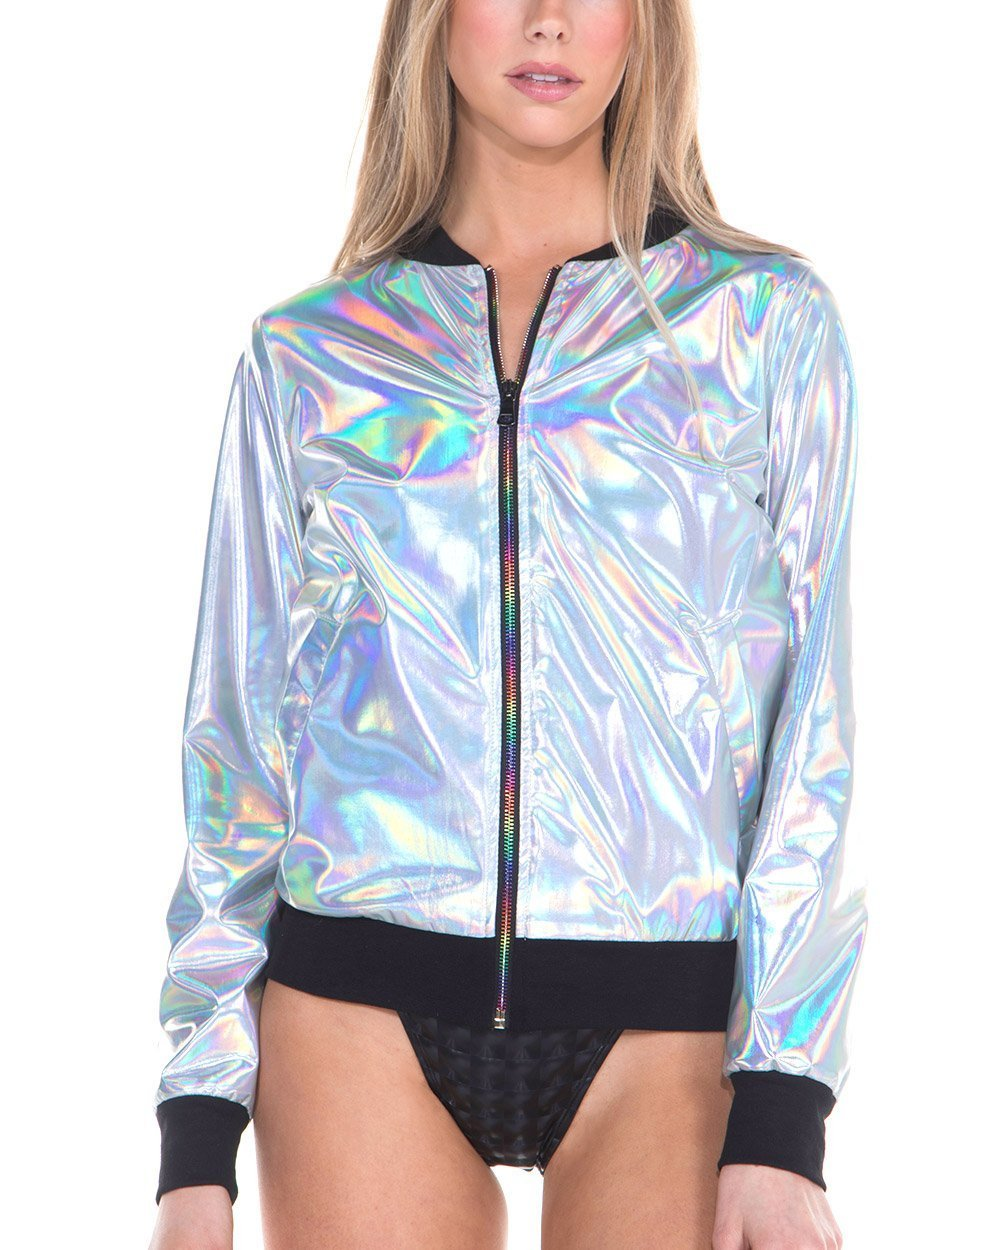 iHeartRaves Opal Silver Hologram Metallic Bomber Zip-up Jacket (2X-Large) by iHeartRaves